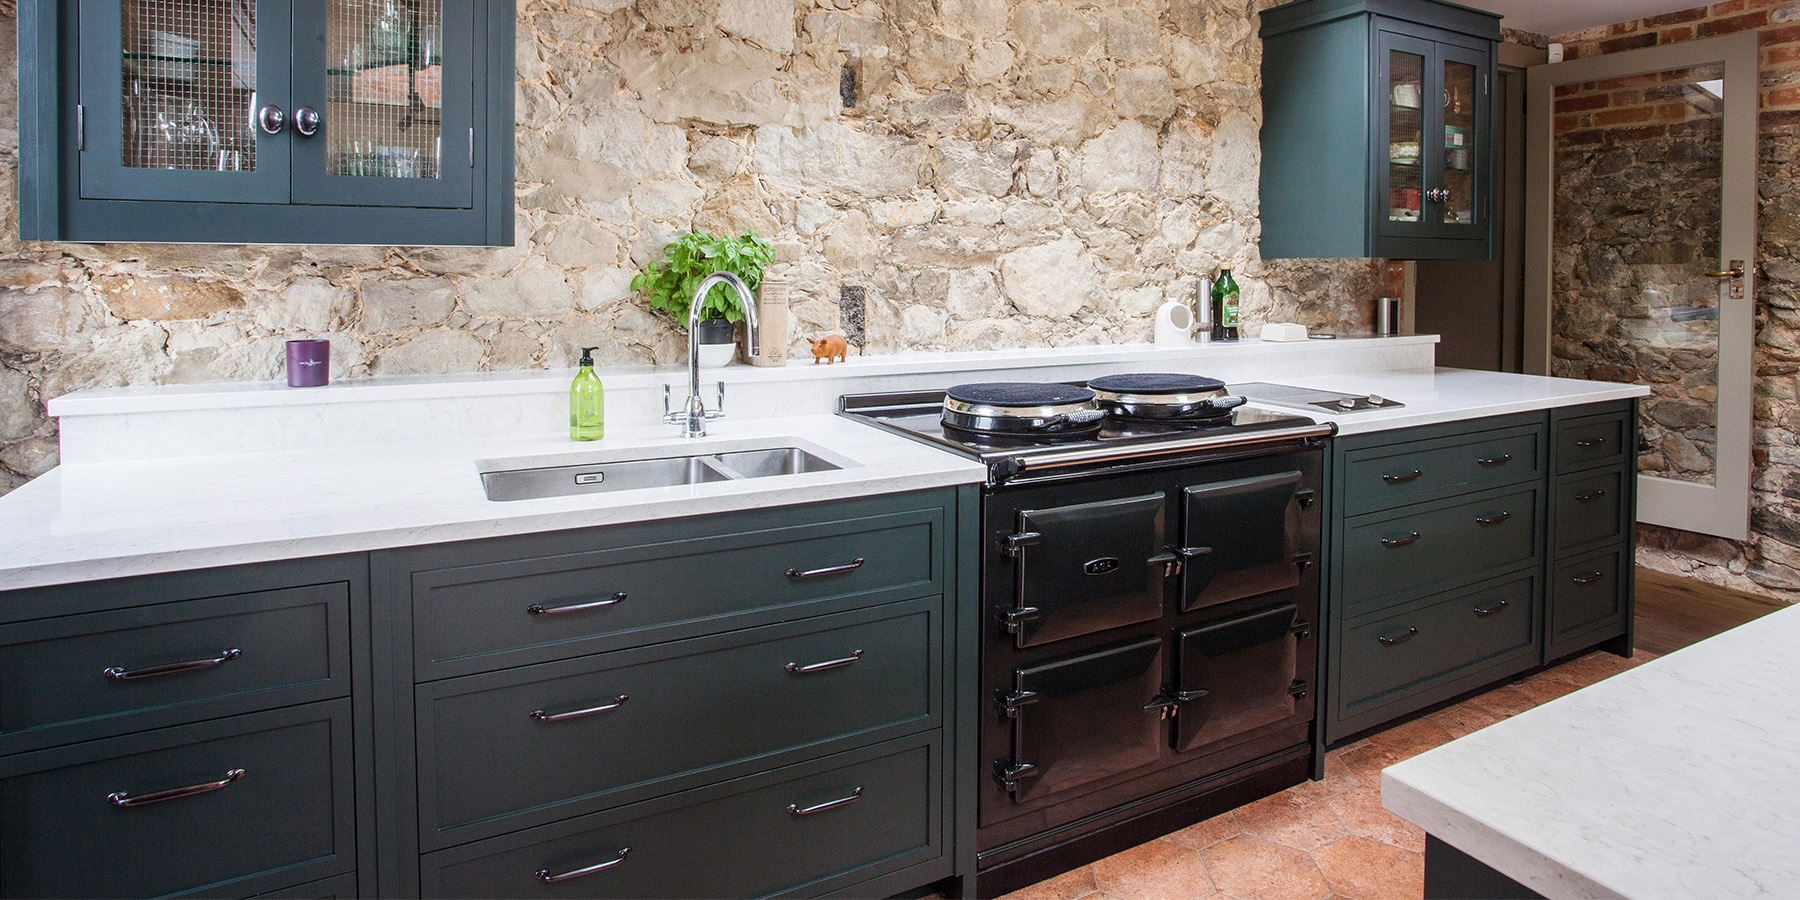 Bespoke Rustic Kitchen With AGA Total Control - Handmade Decolane kitchen furniture in 'Studio Green' by Farrow & Ball, with classic AGA Total Control in Black.